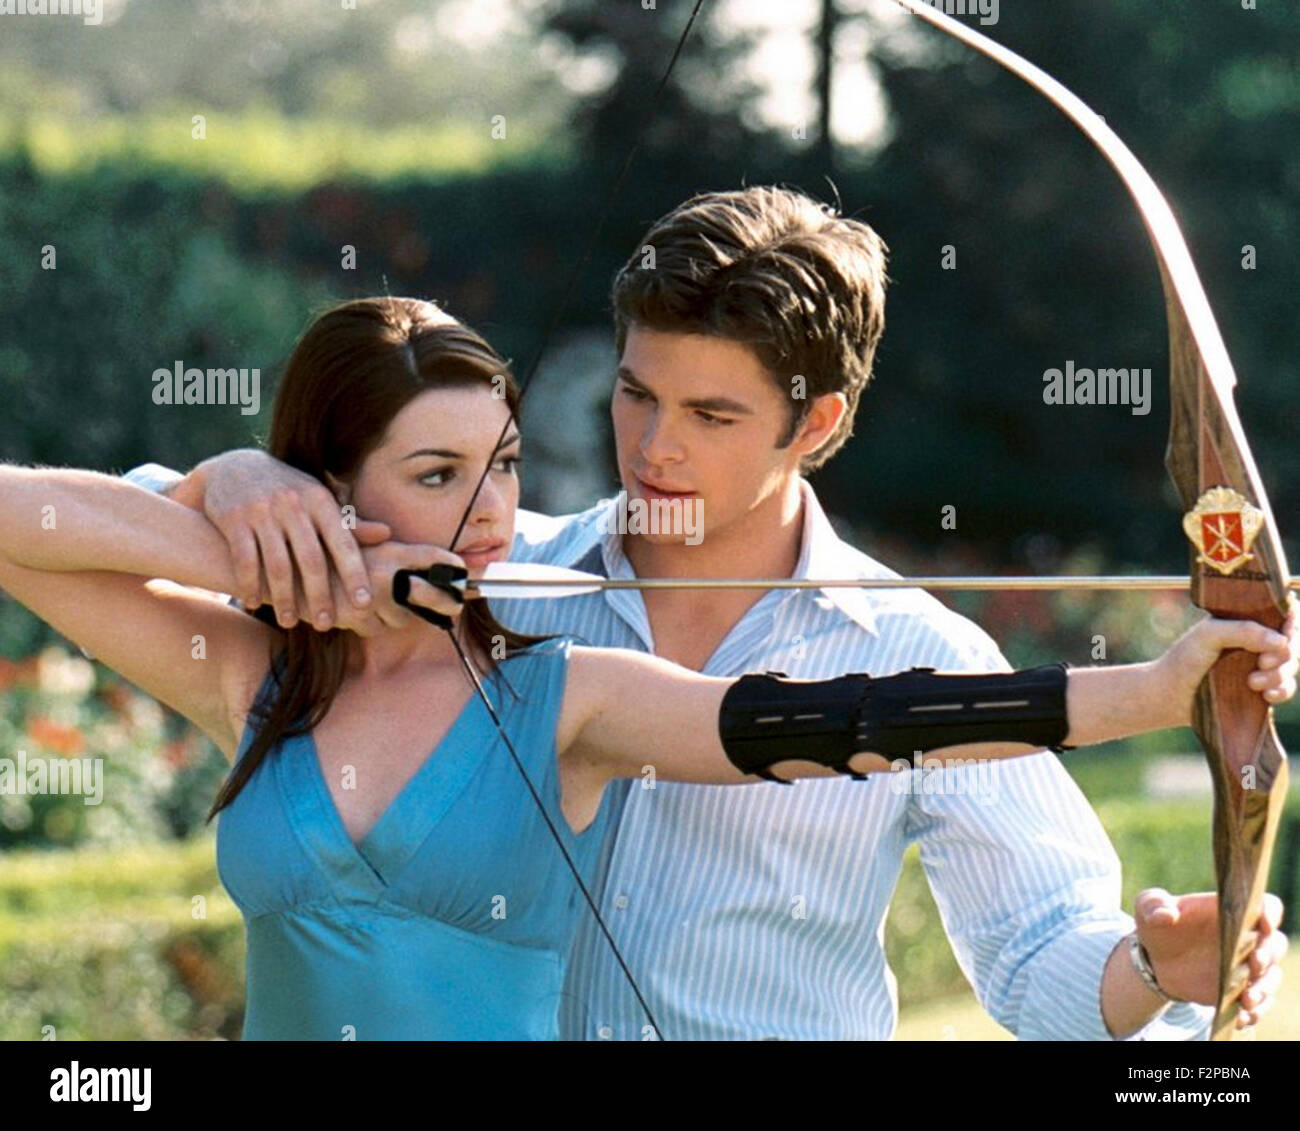 Anne Hathaway Chris Pine Stock Photos & Anne Hathaway